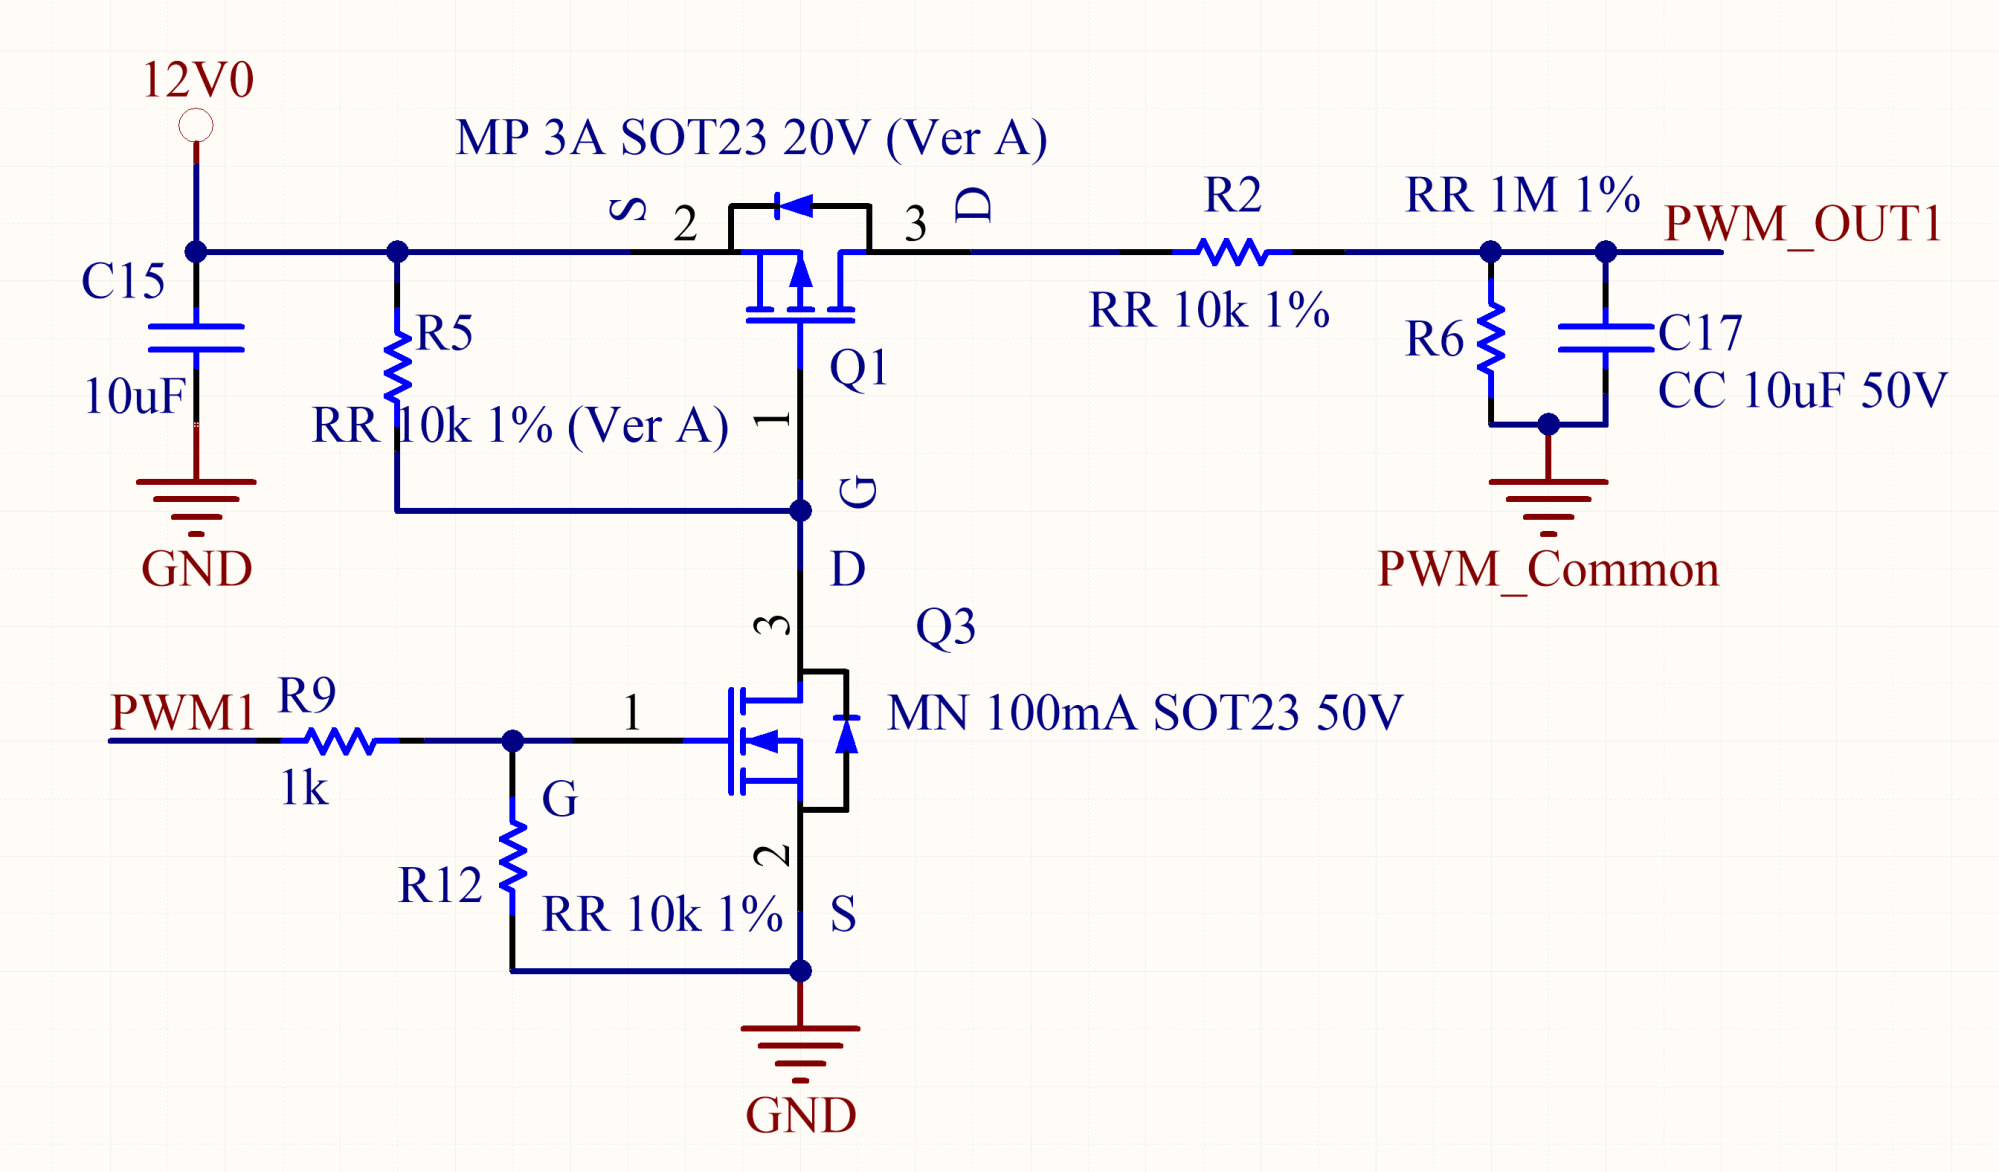 hight resolution of if this low pass filter has a cutoff frequency low enough for the chosen pwm period the ripple over the analog signal is low